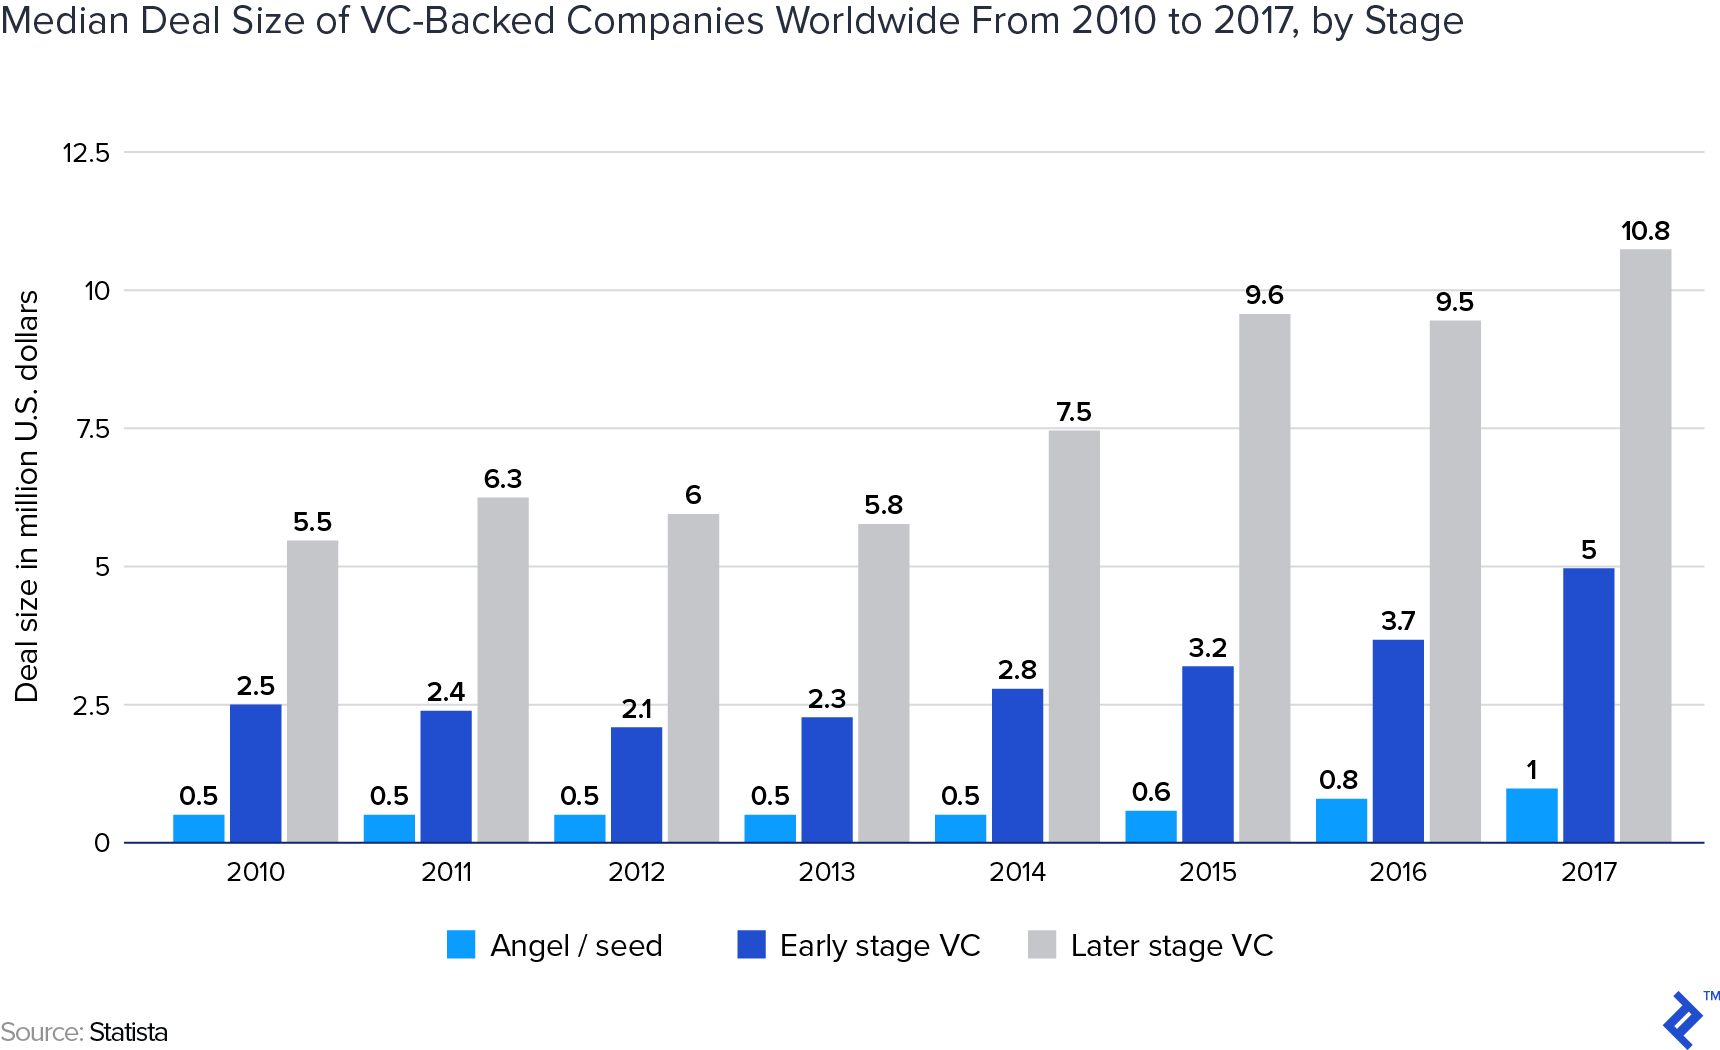 Median deal size of VC-backed companies worldwide from 2010 to 2017, by stage